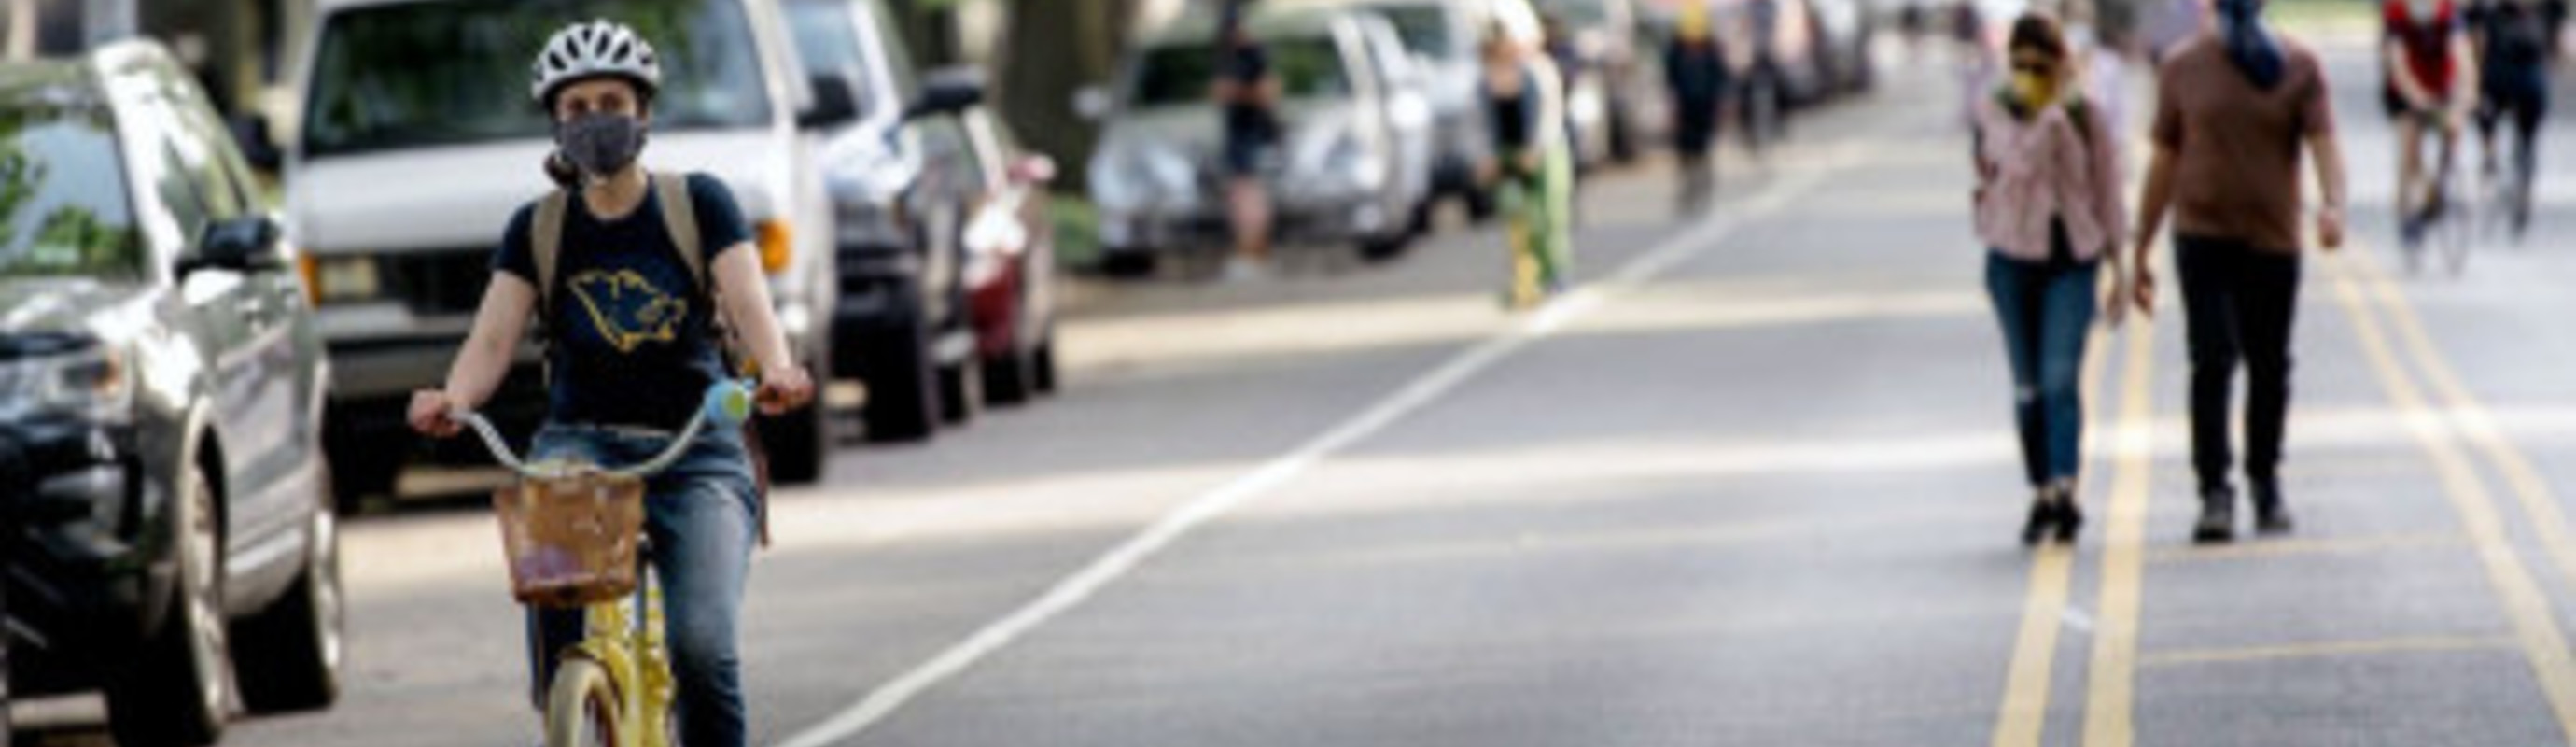 100 THINGS TO KNOW ABOUT BIKING IN NYC : TESTED TIPS FROM EXPERIENCED CYCLISTS